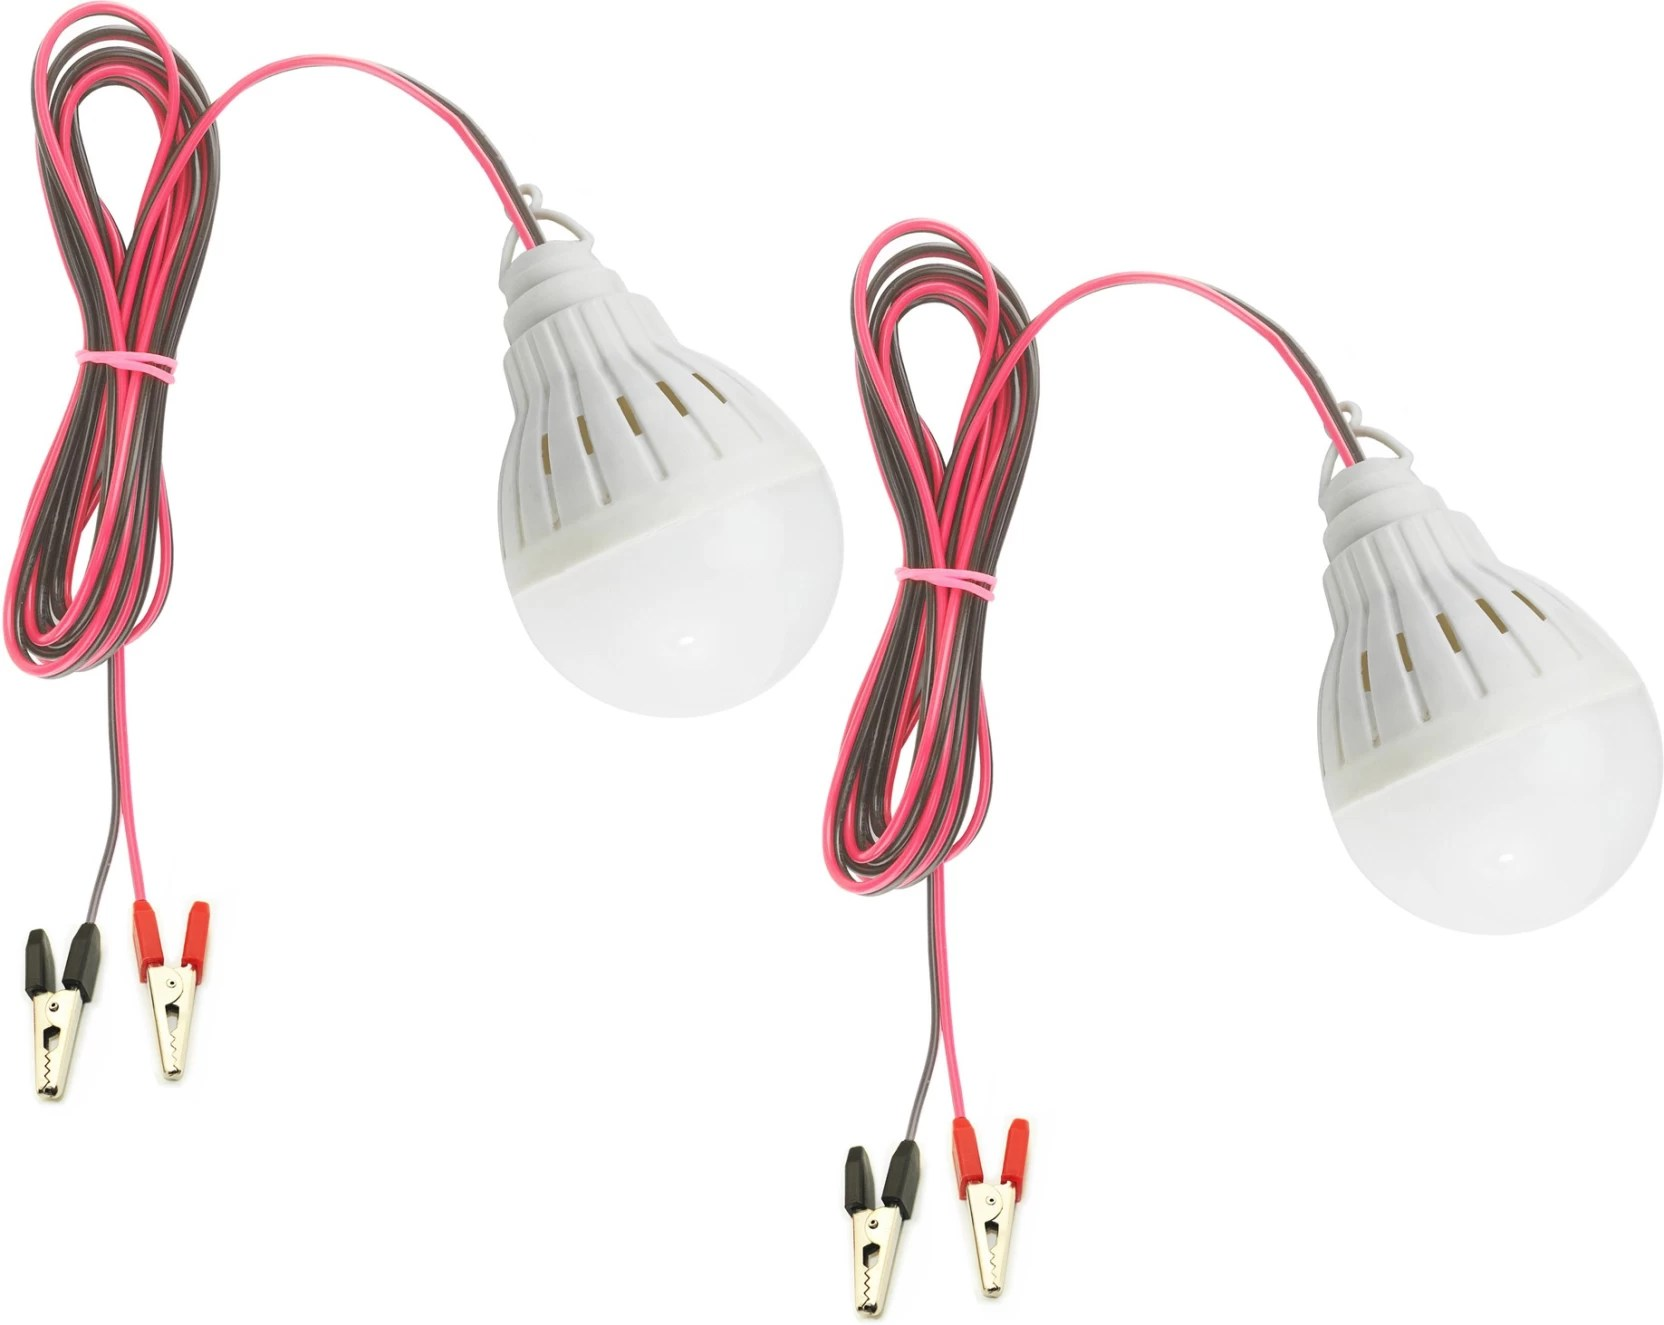 nasa tech 12v 5watts dc solar led light high brightness bulb with 2mtr long wire and clips pack of 2 emergency light white  [ 1664 x 1325 Pixel ]